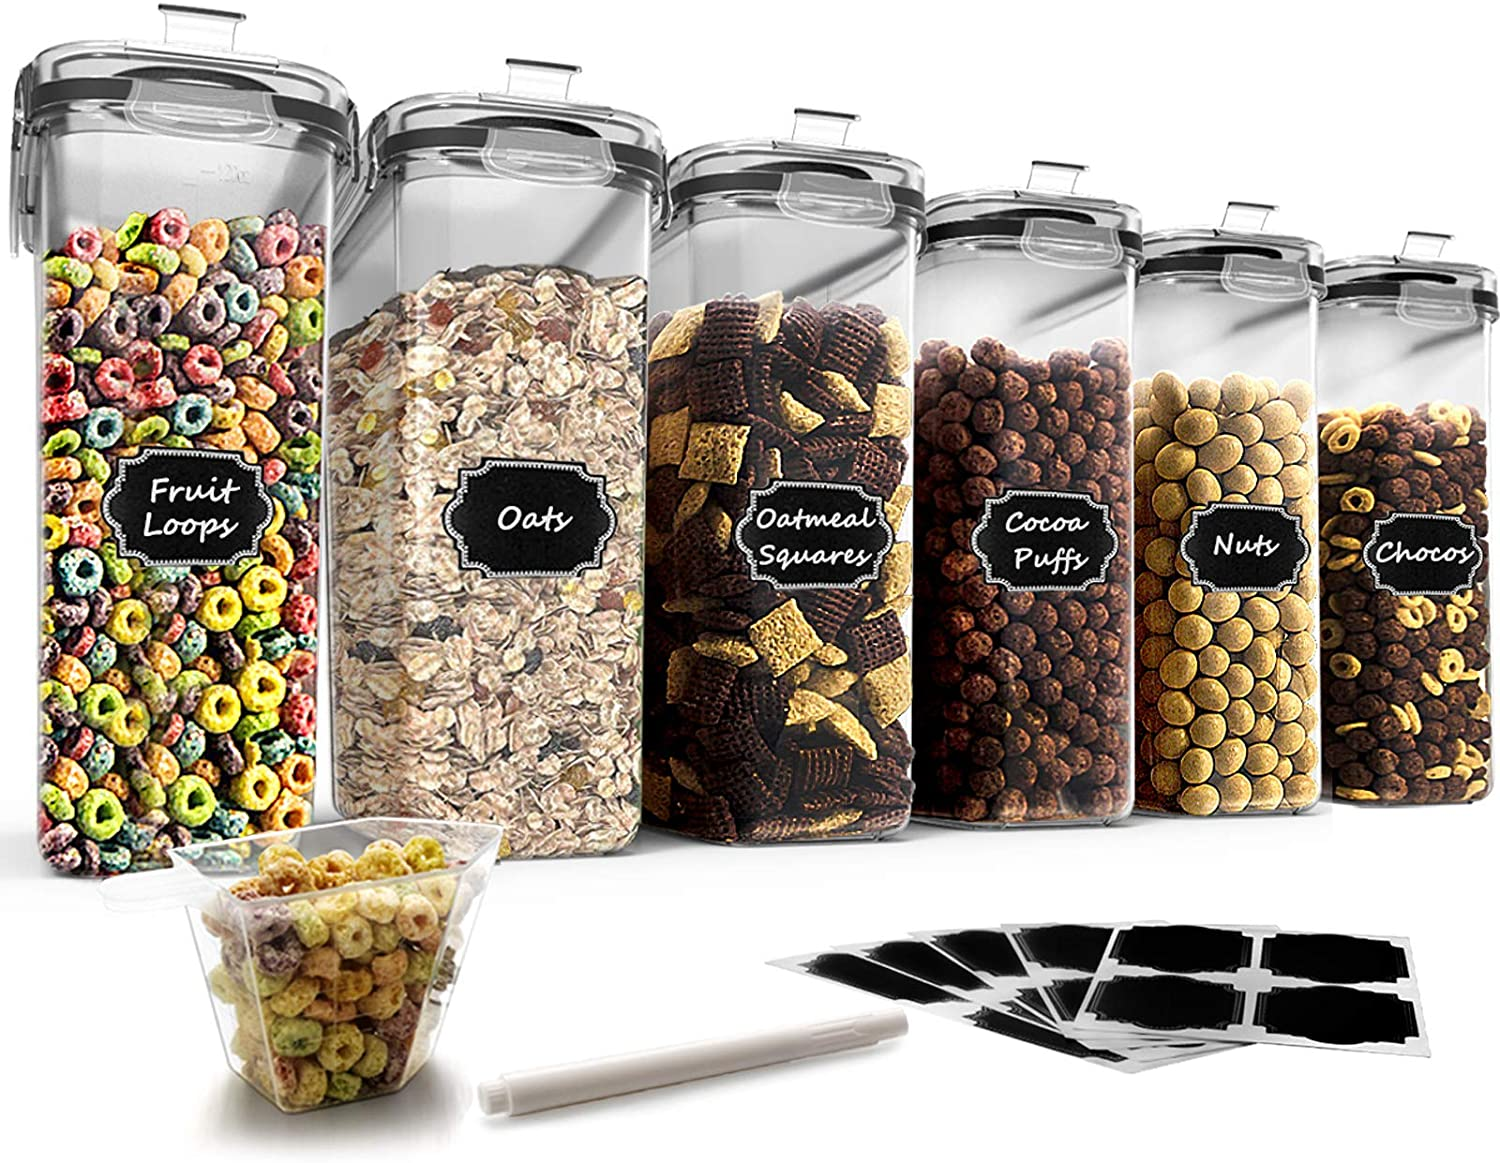 Airtight Food Storage Containers Cereal Container, Blingco Large Cereal & Dry Food Storage Containers for Flour, Sugar, Cereal and Pantry Storage with Black Locking Lids - Set of 6 (4L /135.3oz)